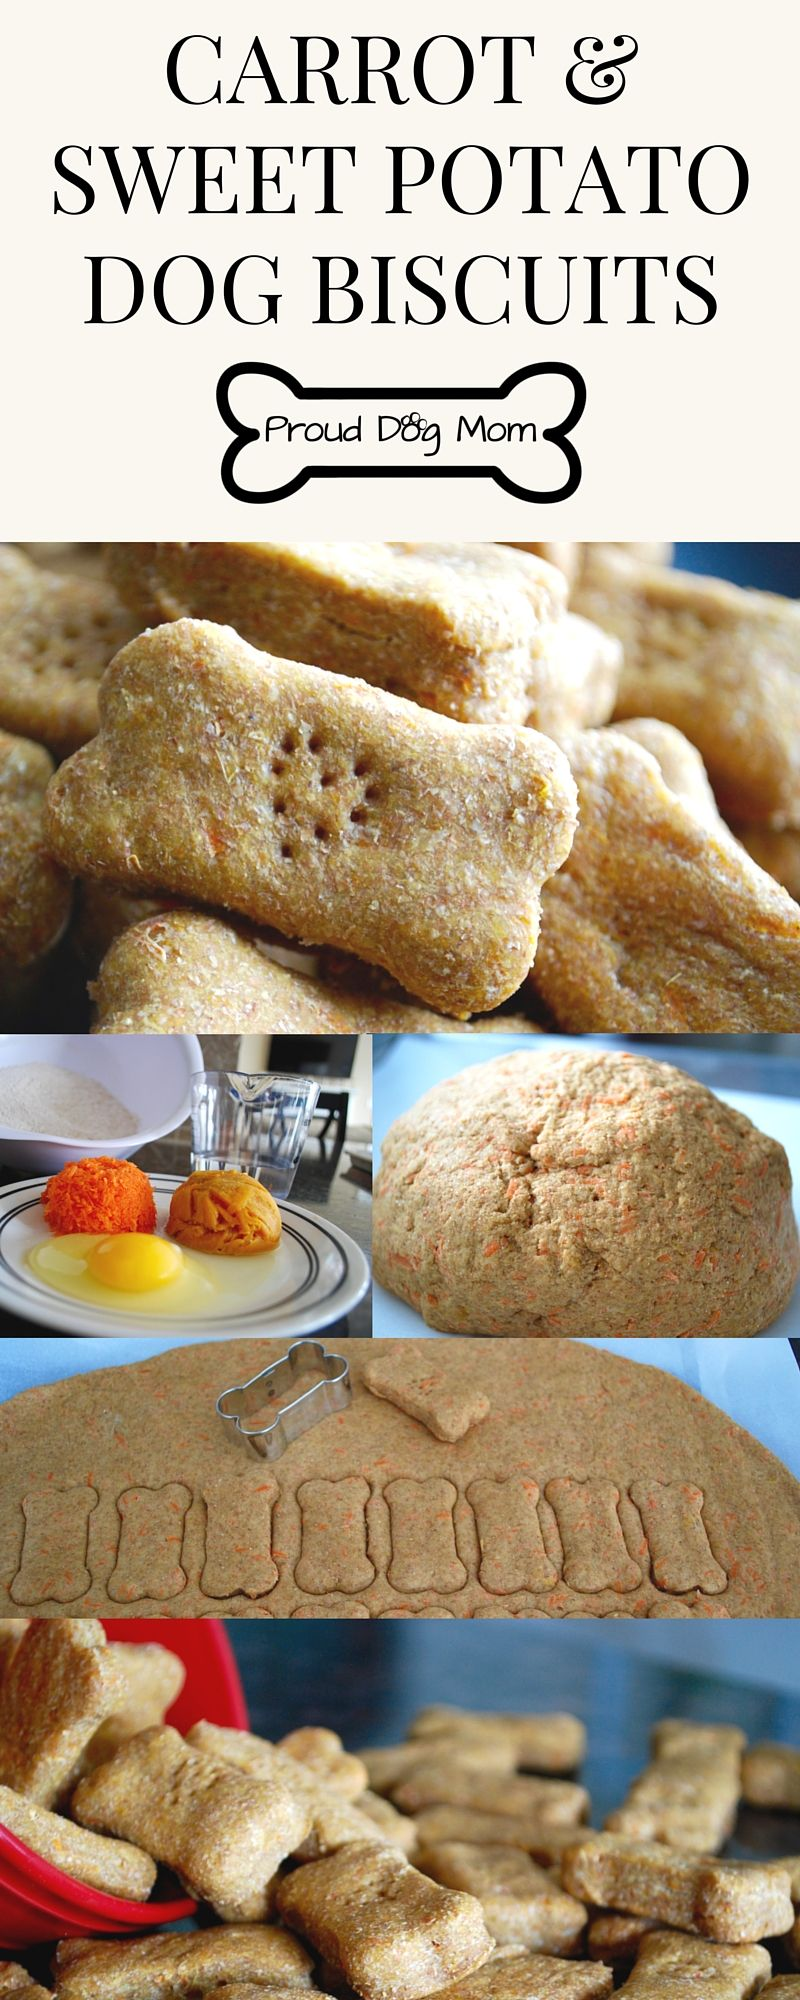 Easy Carrot And Sweet Potato Dog Biscuits